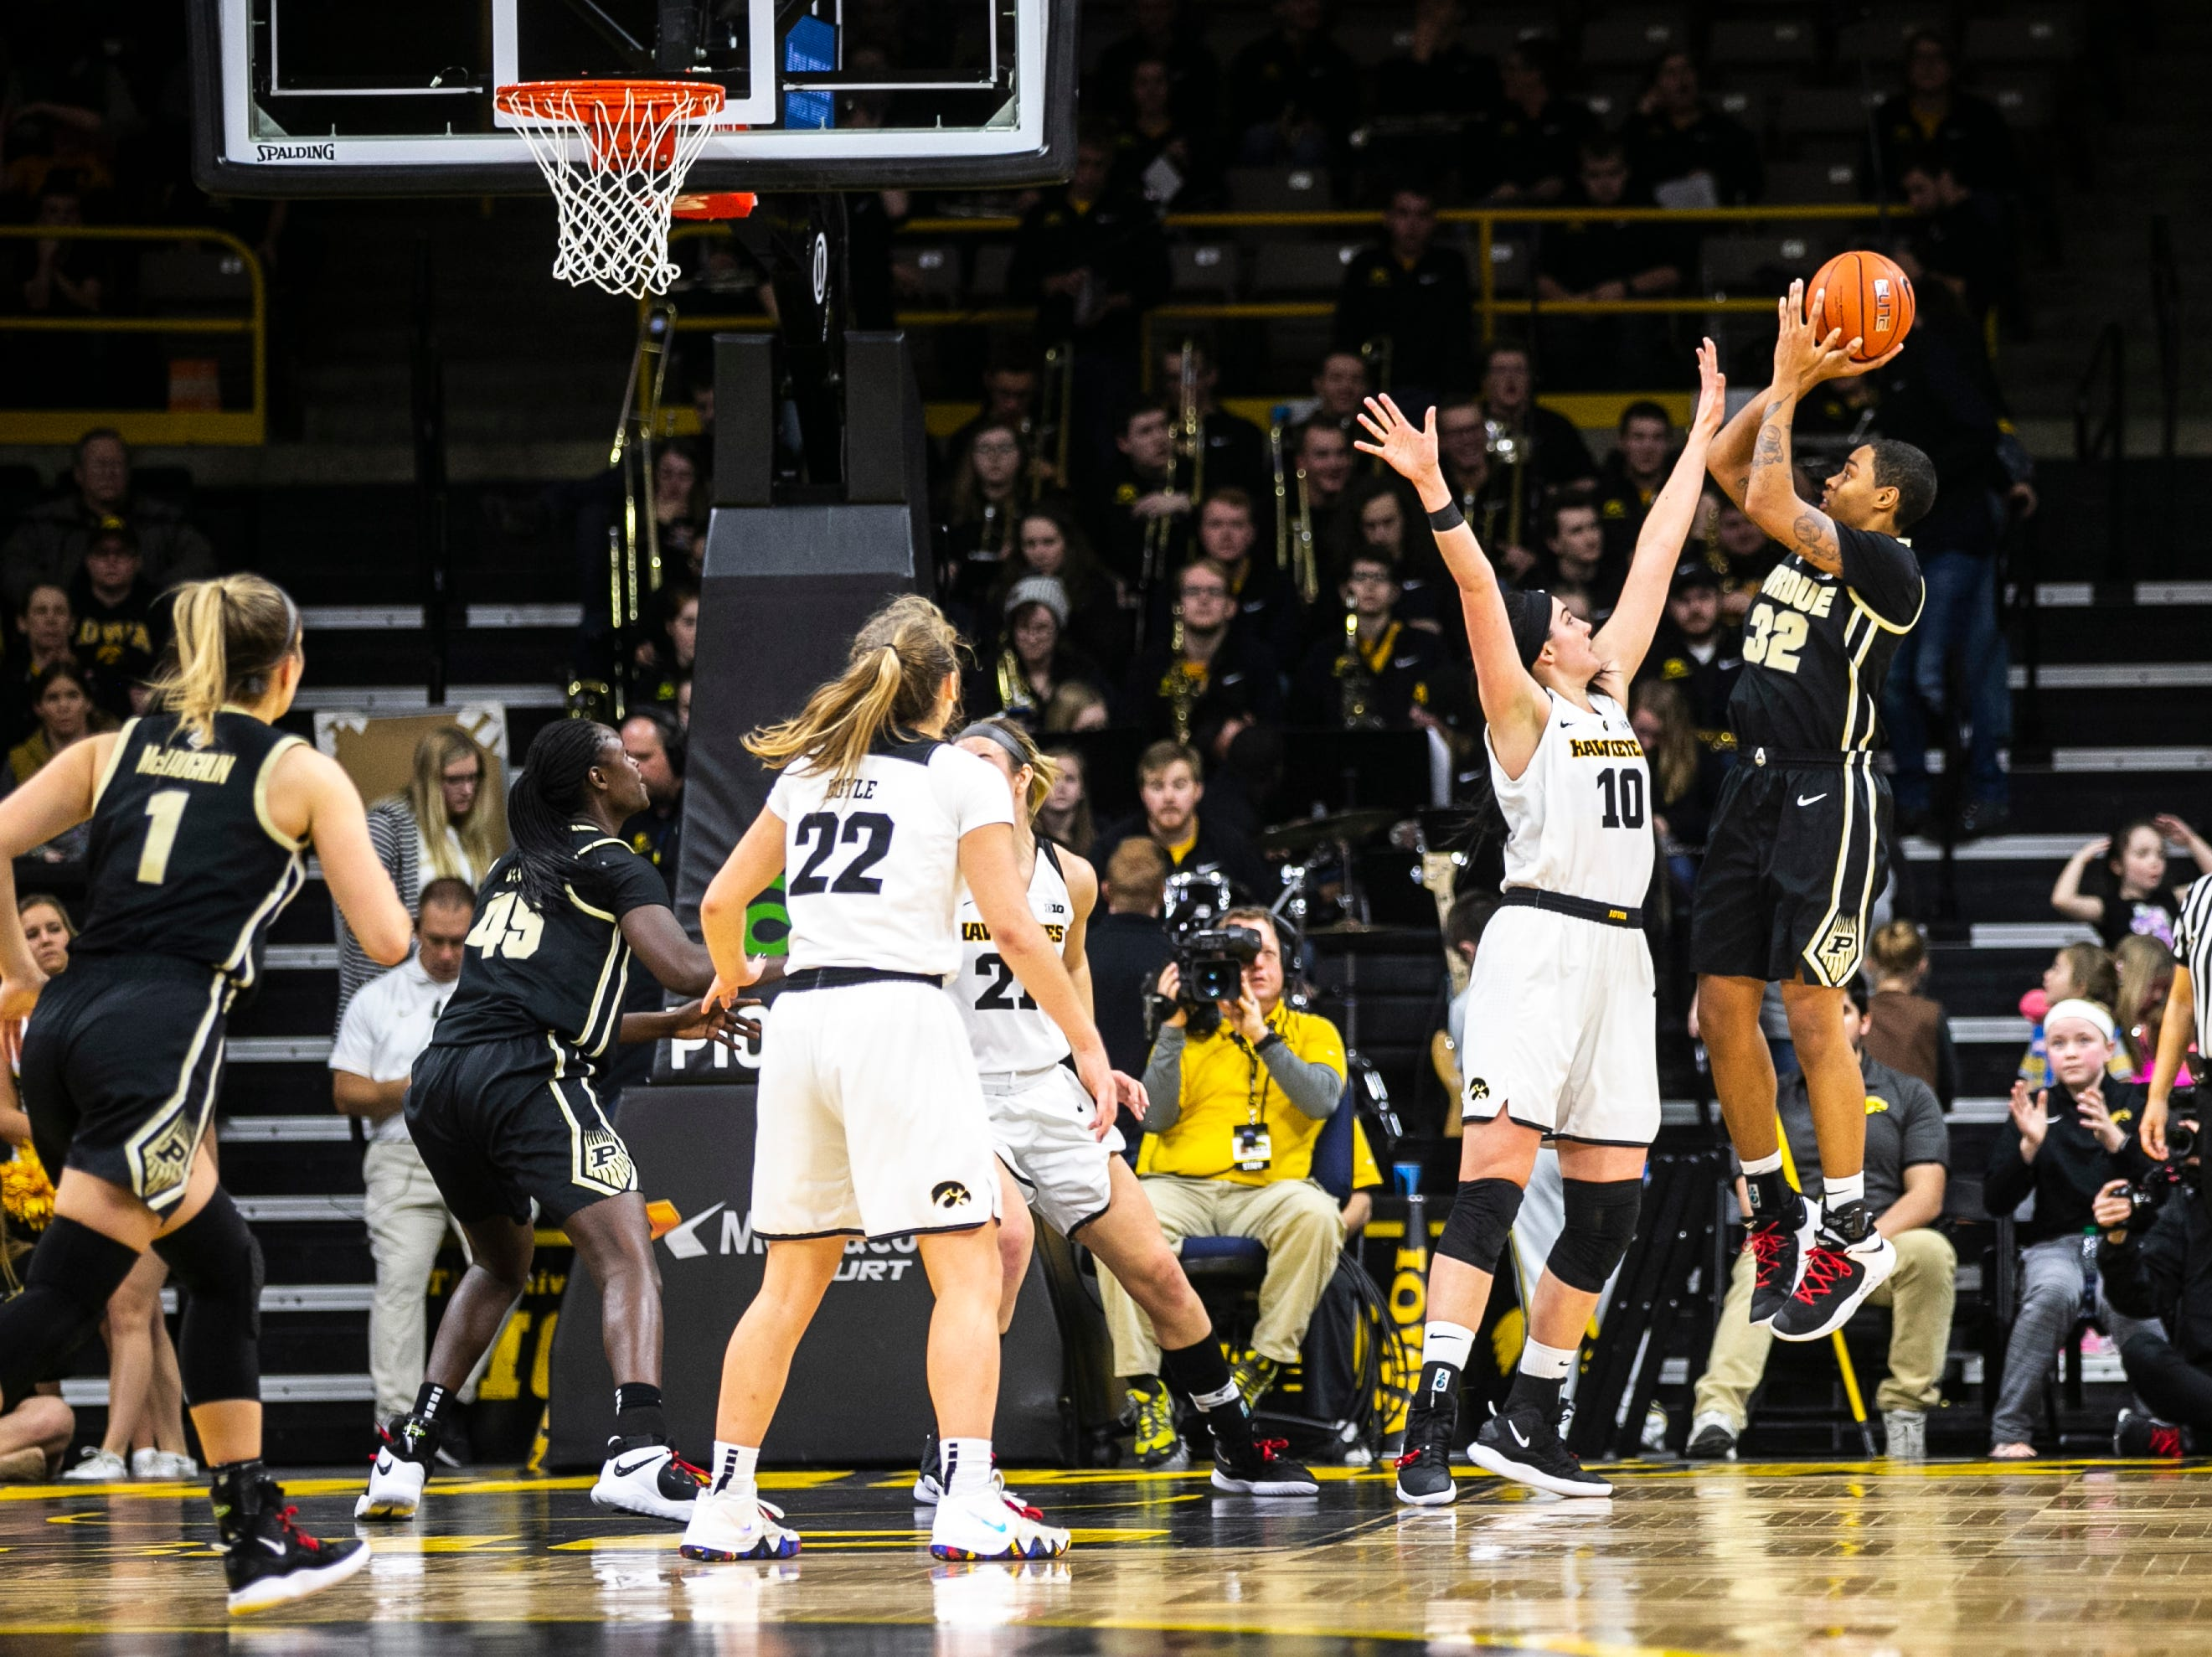 Iowa center Megan Gustafson (10) defends Purdue forward Ae'Rianna Harris (32) during a NCAA Big Ten Conference women's basketball game on Sunday, Jan. 27, 2019, at Carver-Hawkeye Arena in Iowa City, Iowa.